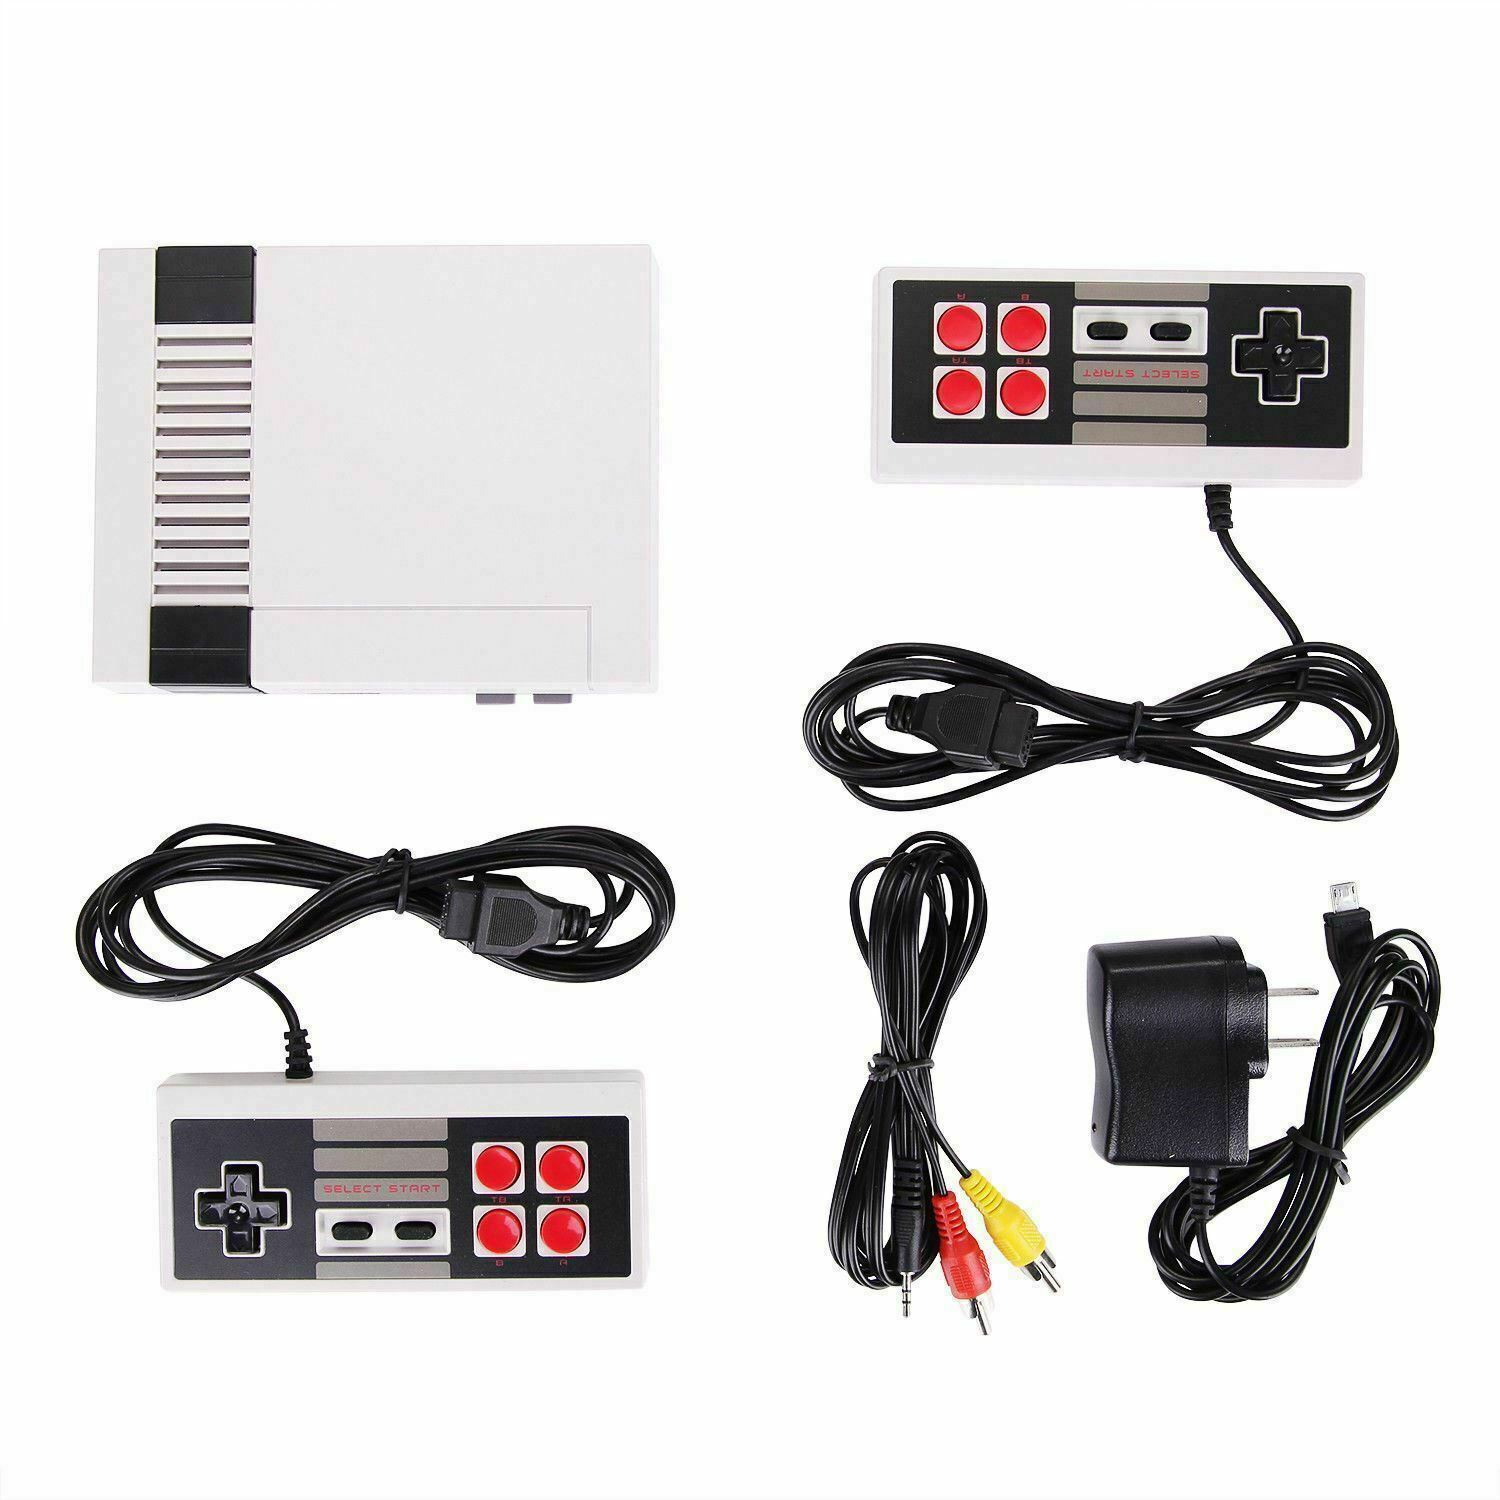 Classic Video Game System with Over 620 Built-In Games